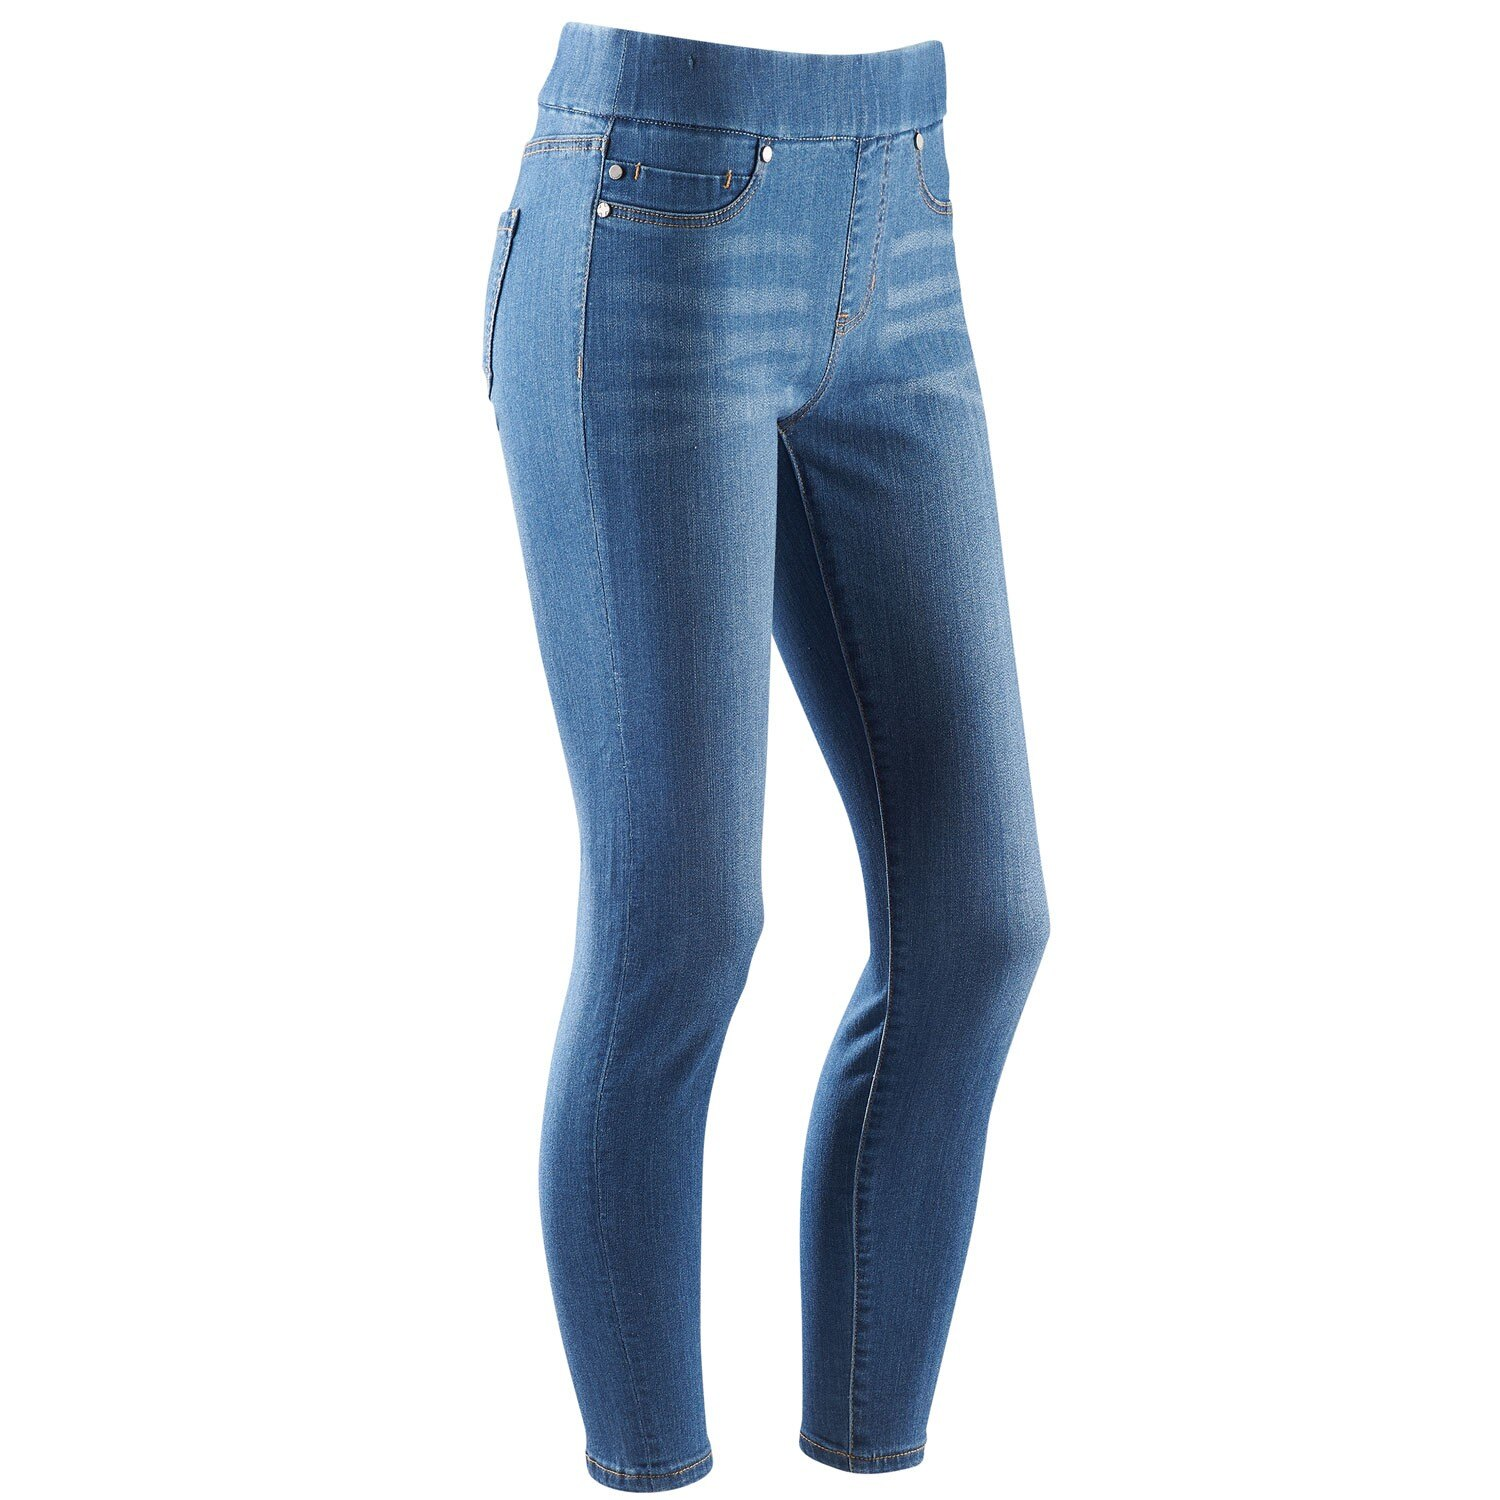 3acd1aa8d034f Universal Direct Brands: Liverpool Jeans Company Women's Pull-On ...